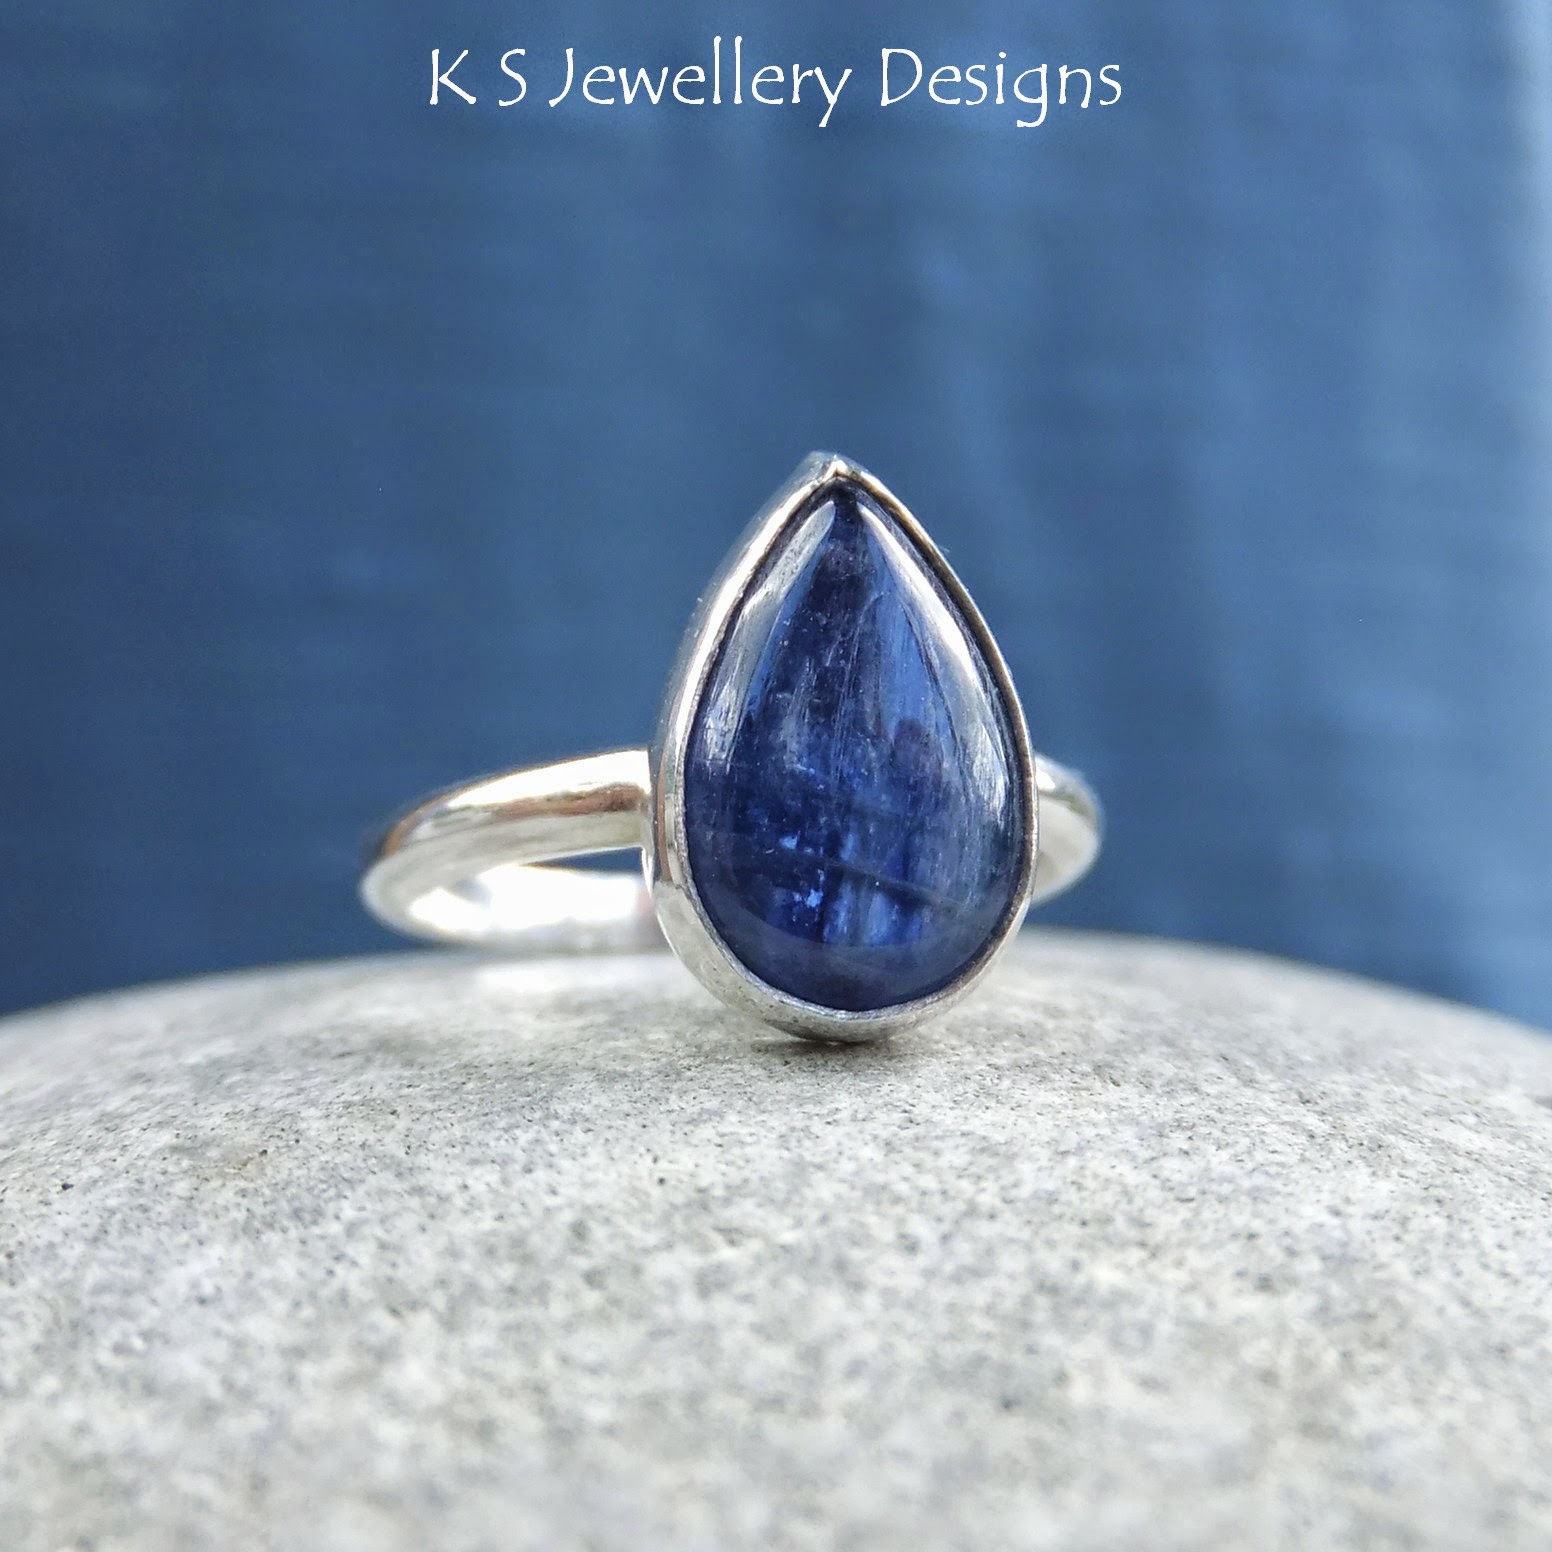 http://ksjewellerydesigns.co.uk/ourshop/prod_3261015-Kyanite-Sterling-Silver-Teardrop-Gemstone-Ring-MADE-TO-ORDER.html